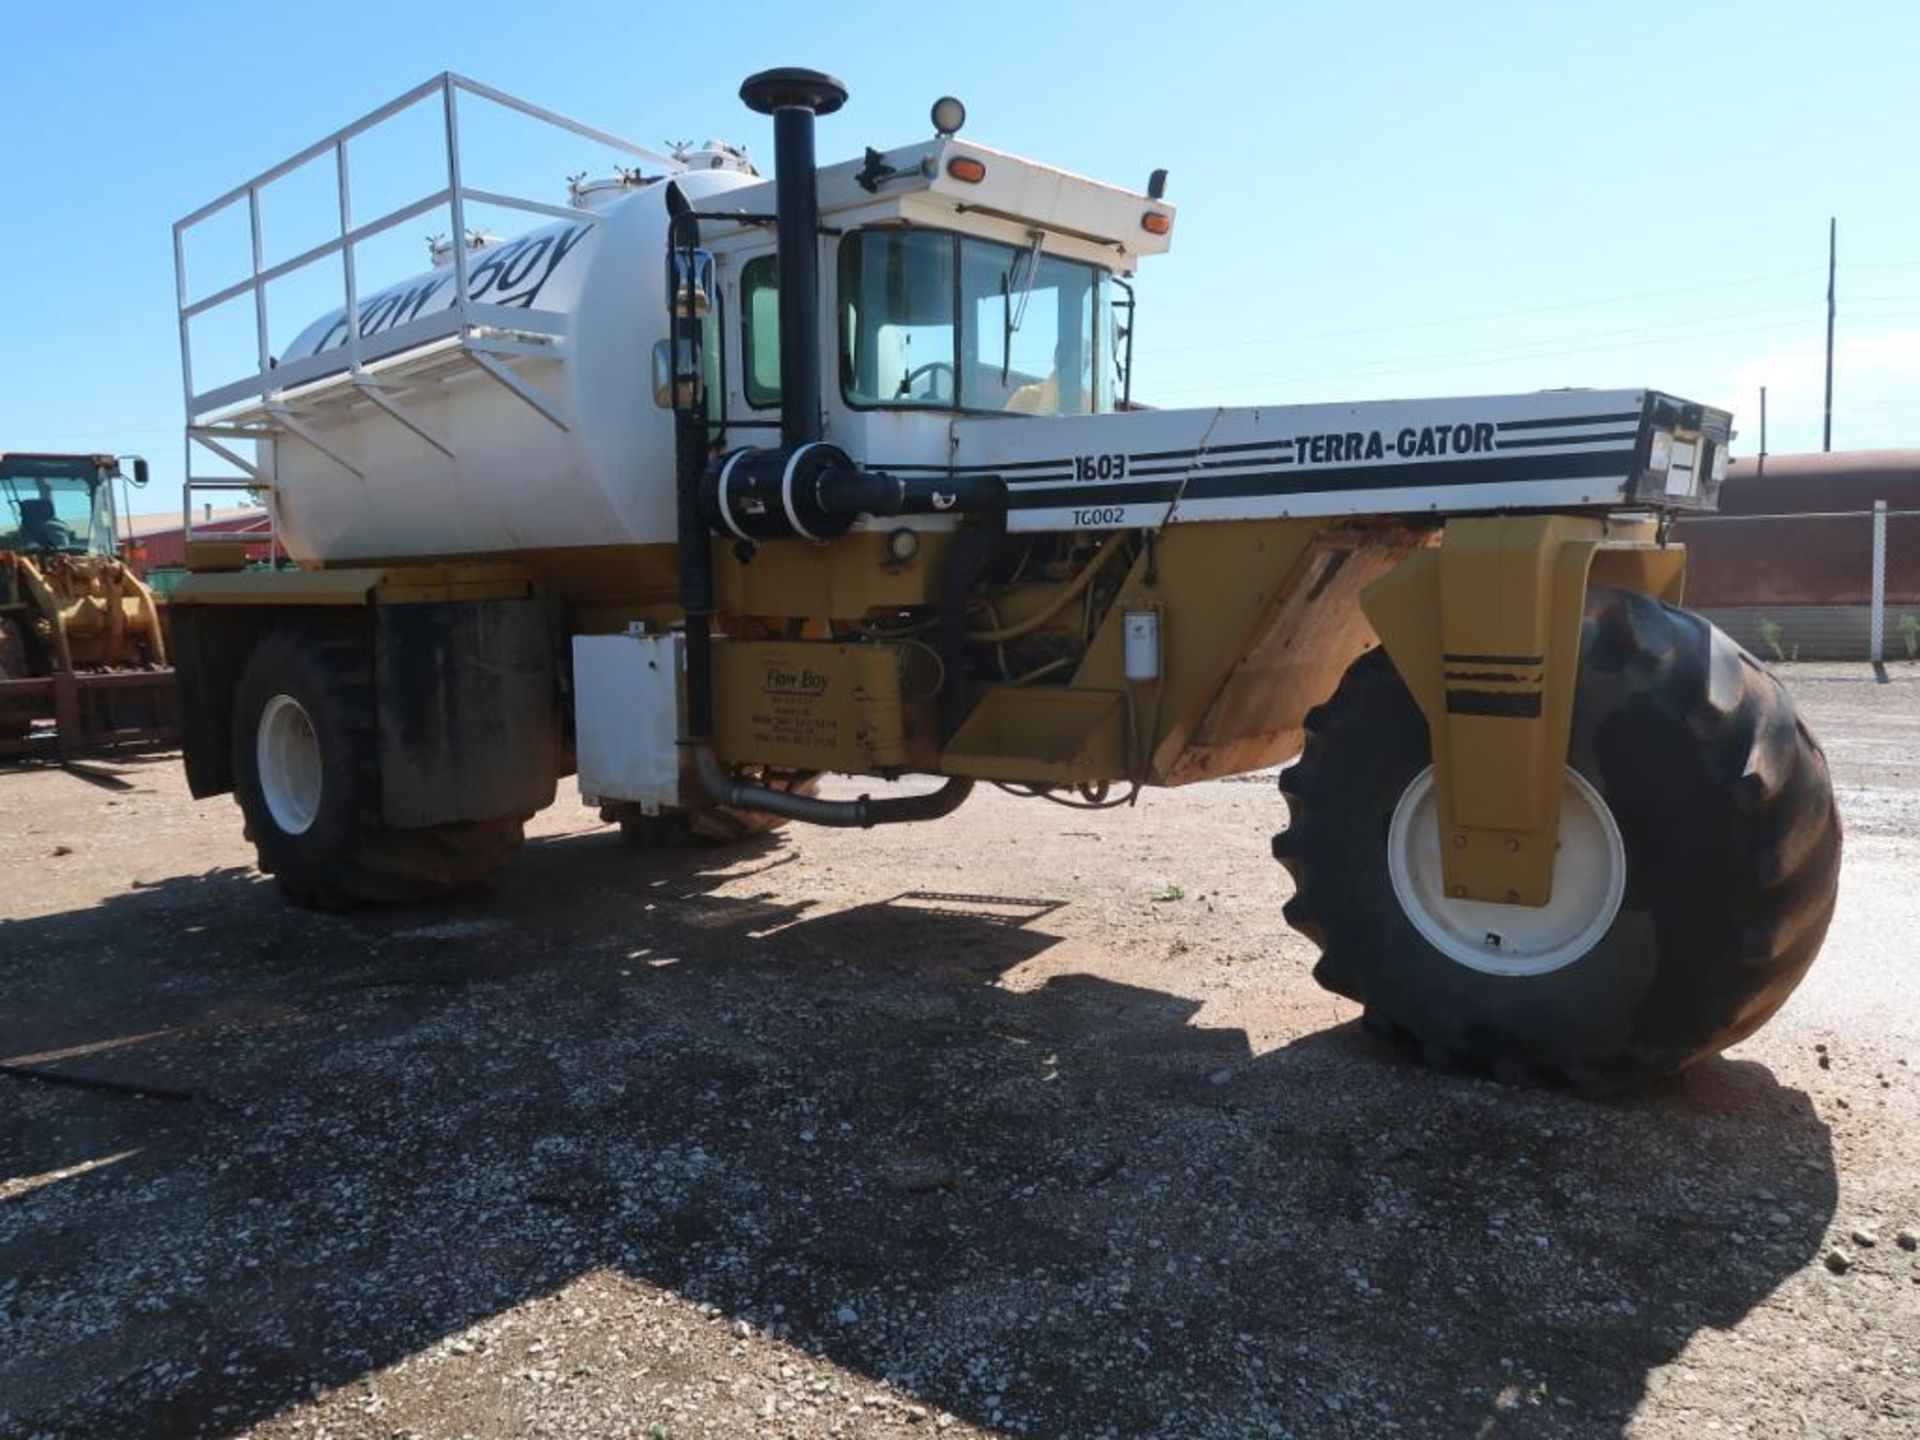 Lot 229 - Ag-Chem Terragator Flow Boy Mud Truck Model 1603, VIN 1610645, Challenger Vacuum Pump, 4550 hours in